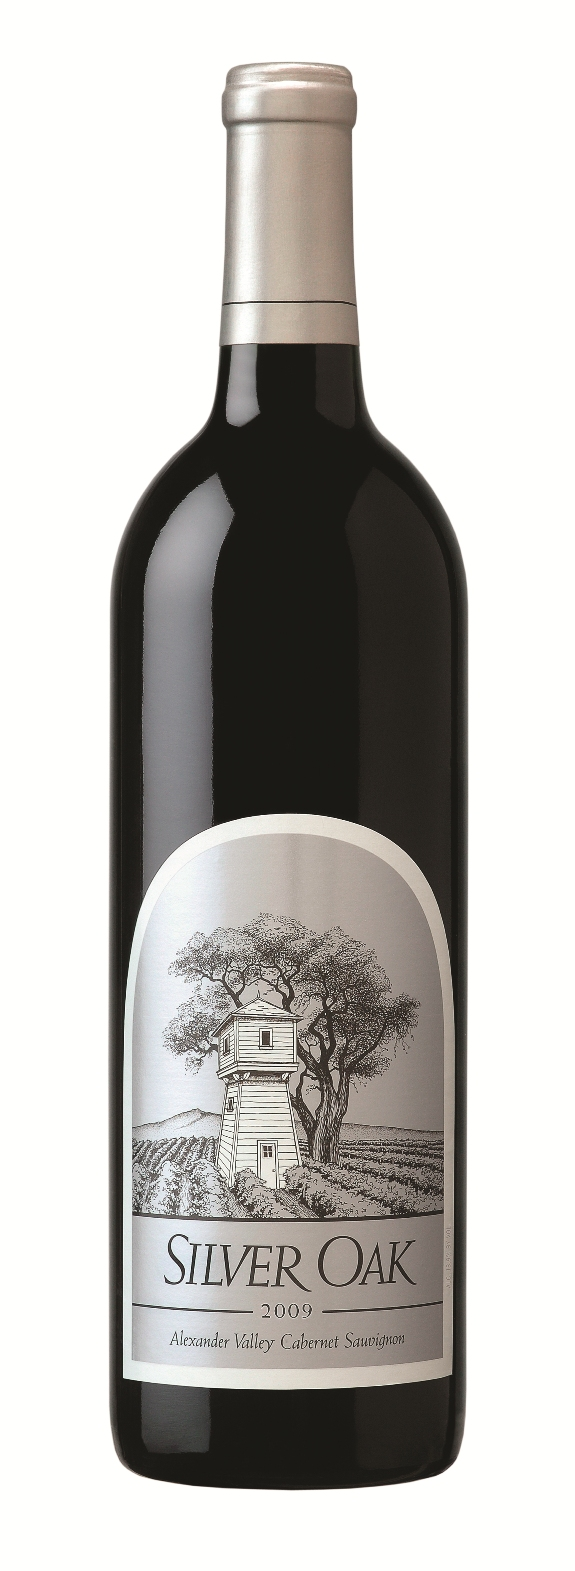 Silver Oak Cabernet Sauvignon Alexander Valley 2009, 750ml () from The BPW - Merchants of rare and fine wines.